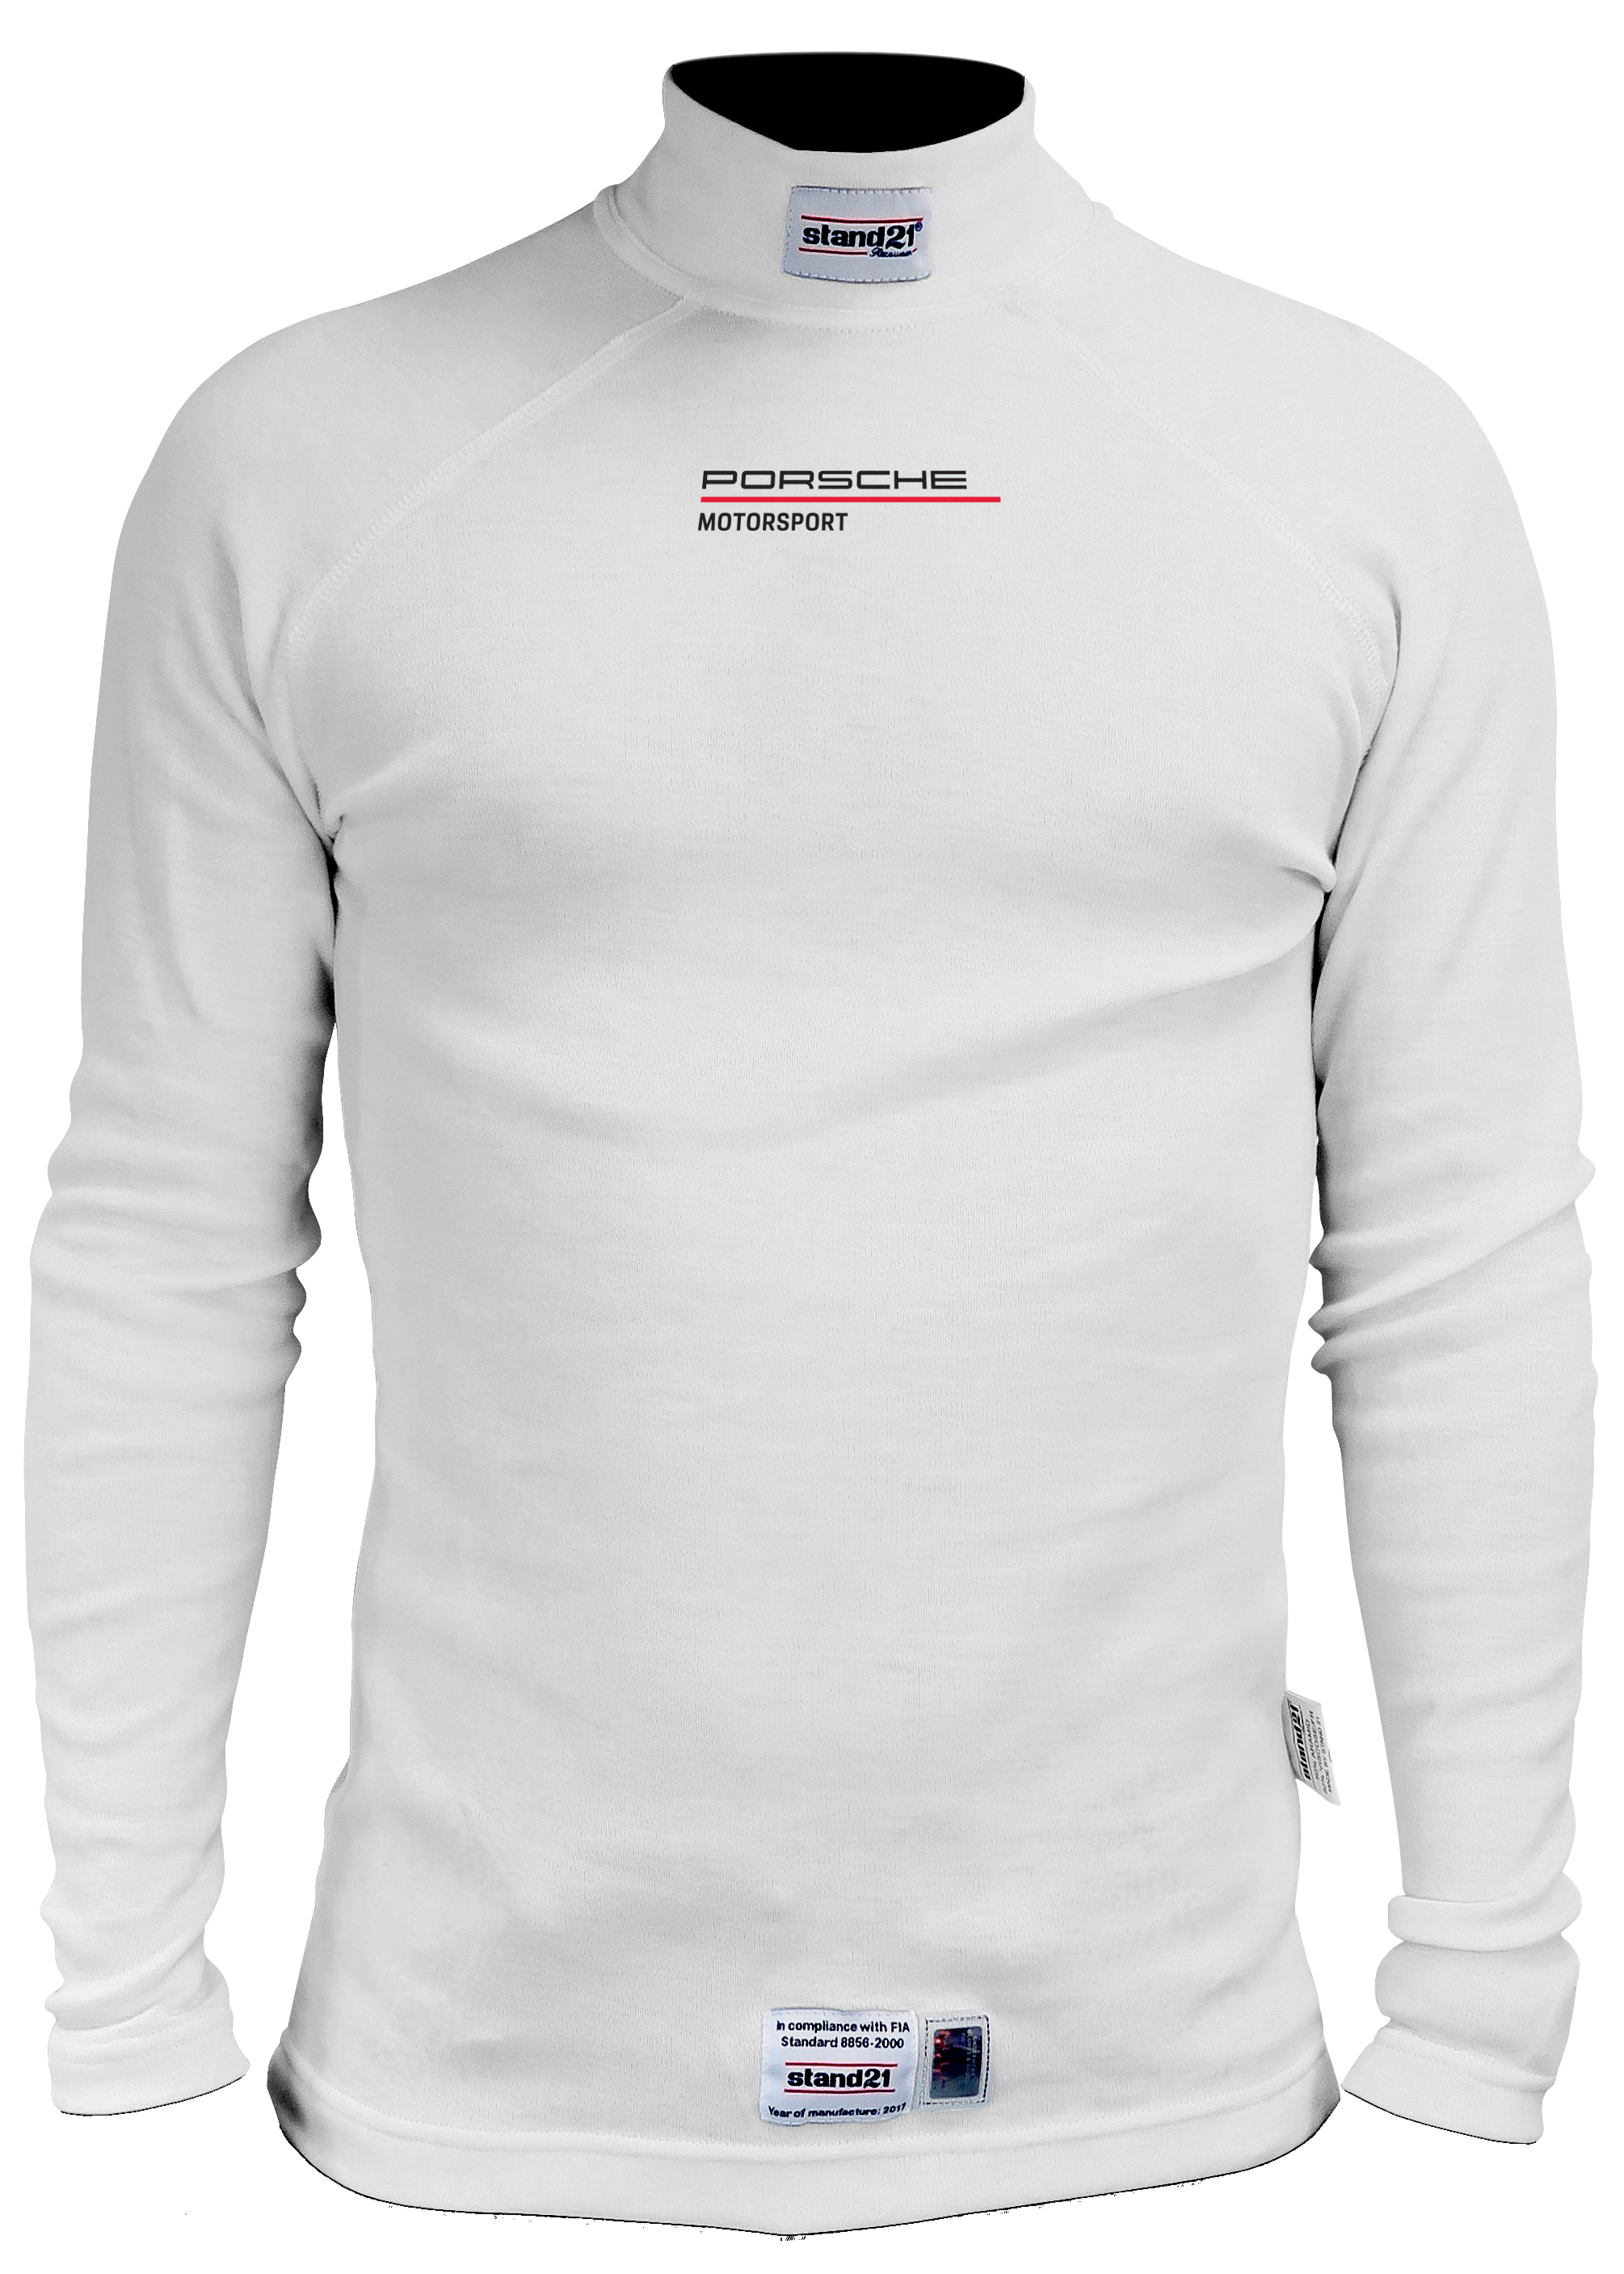 Porsche Motorsport stock Regular Evo top underwear